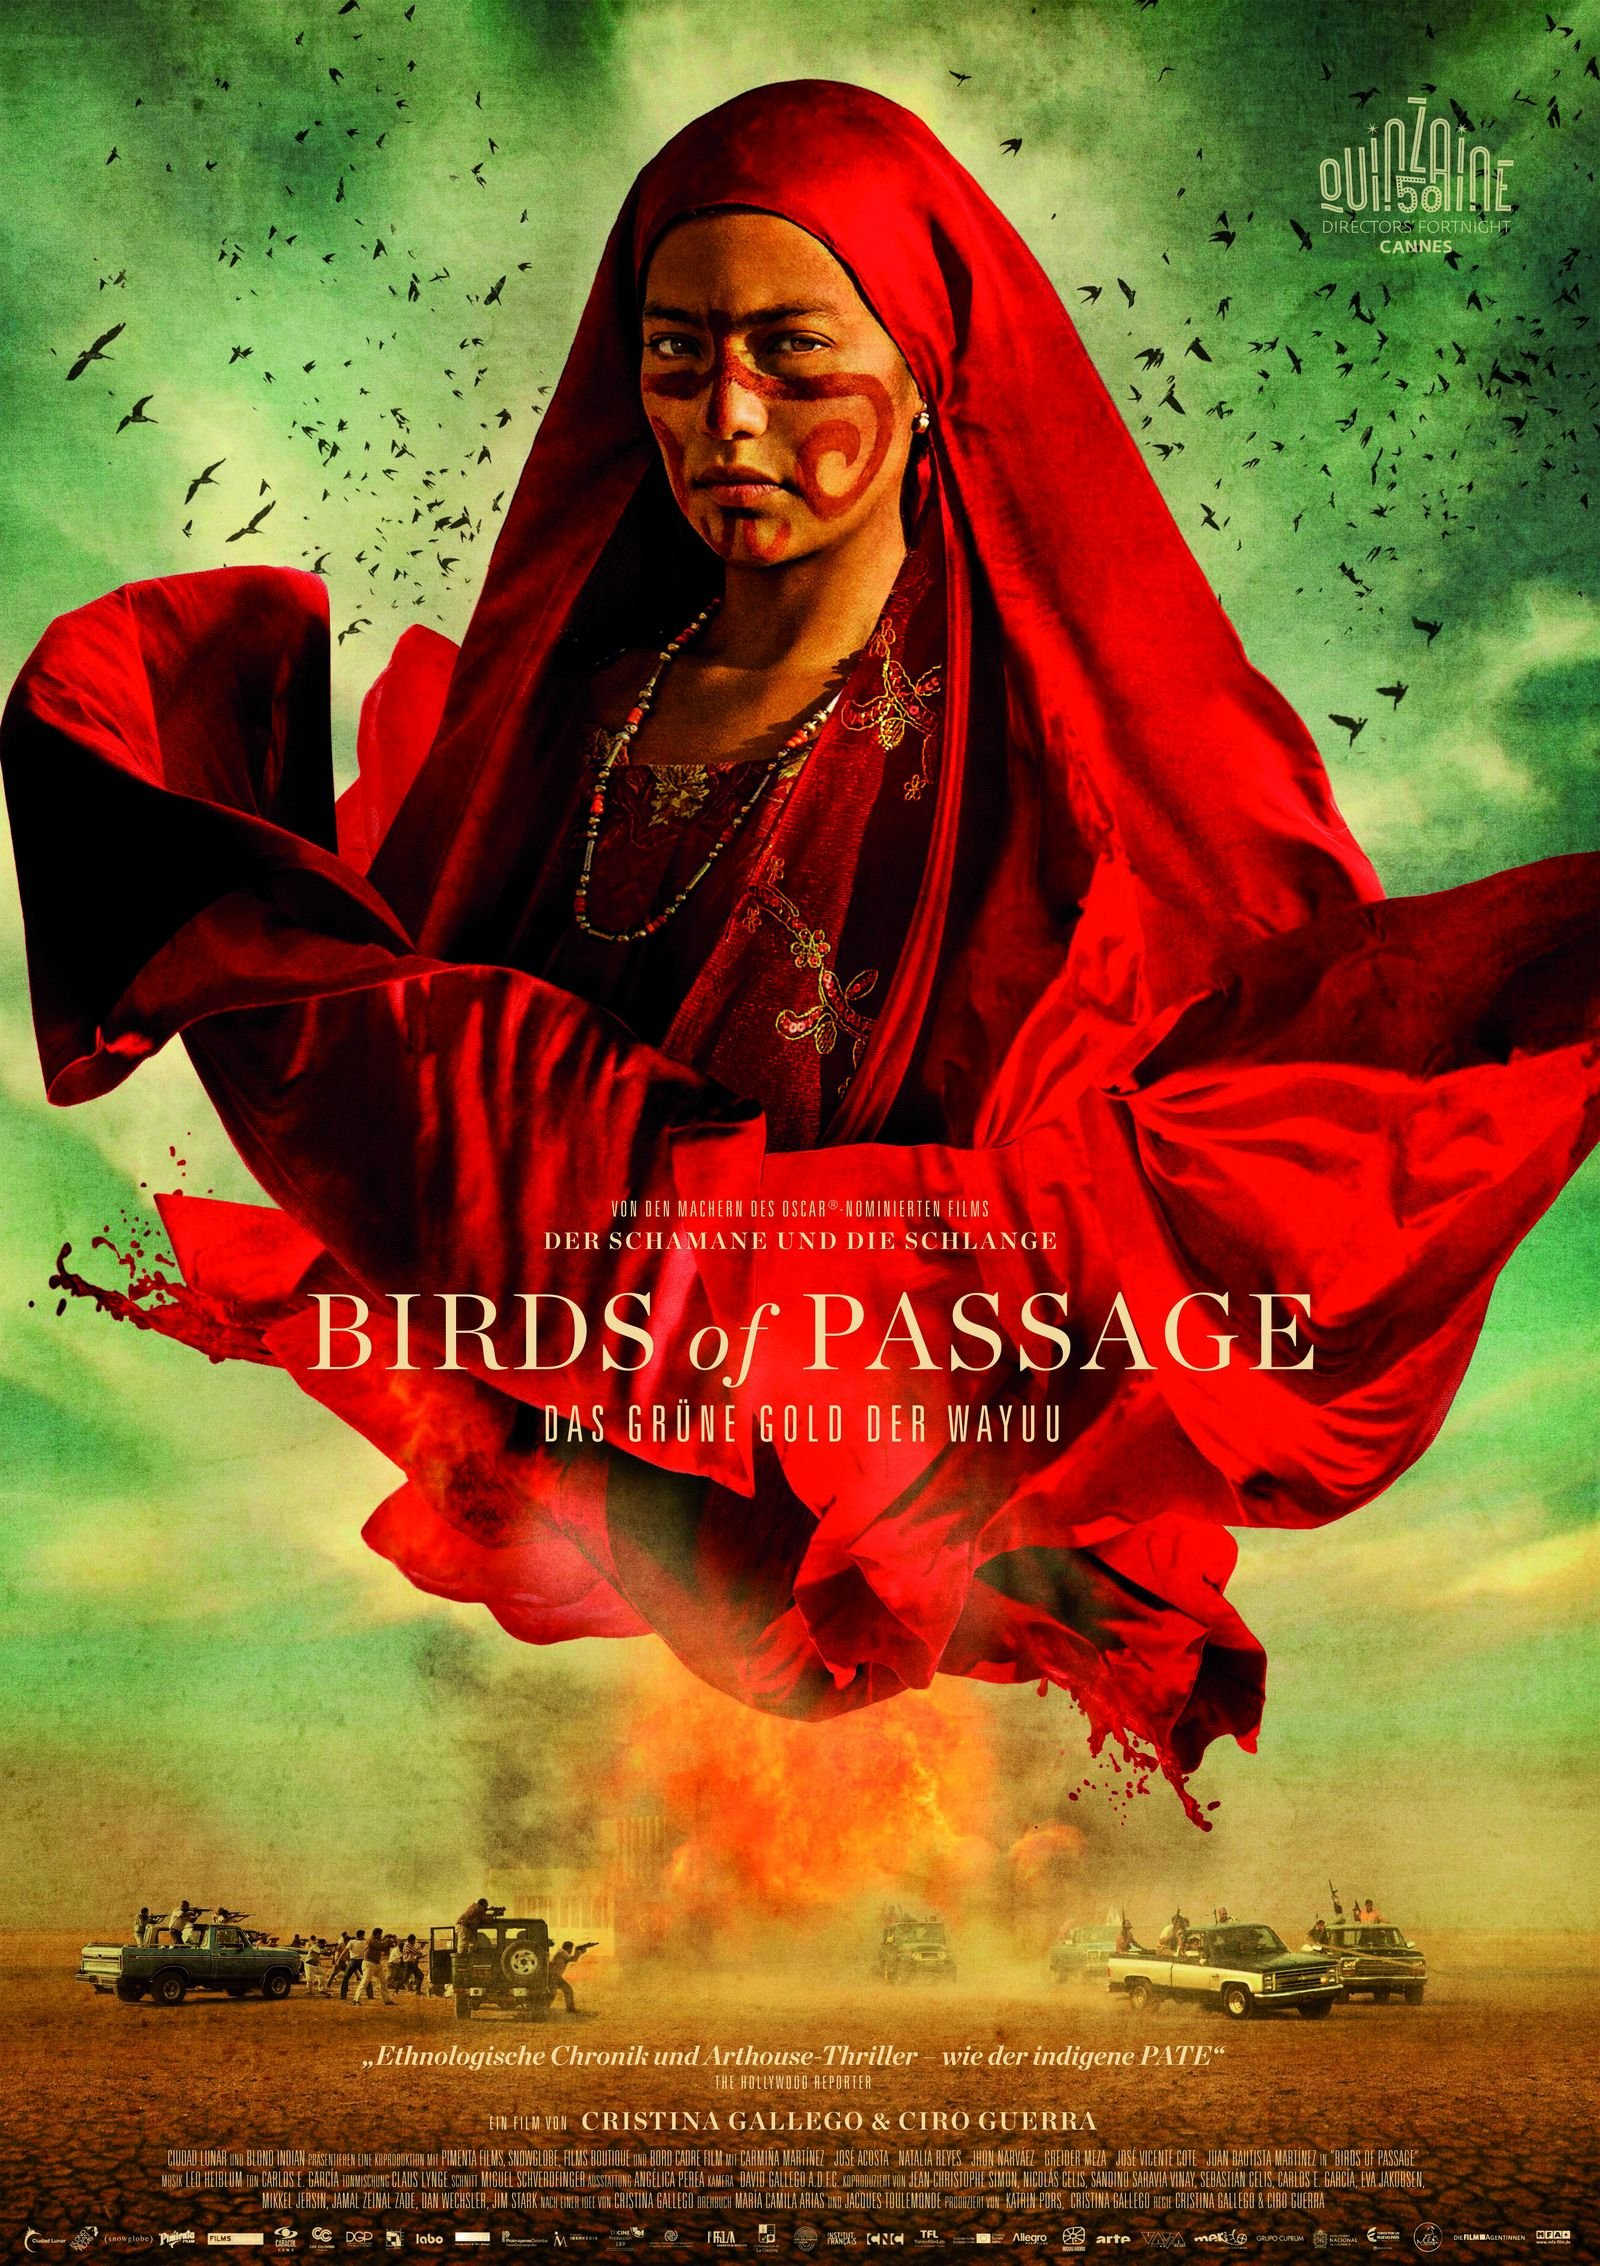 Birds of Passage – Das grüne Gold der Wayuu - © 2018 Ciudad Lunar, Blond Indian, Mateo Contreras